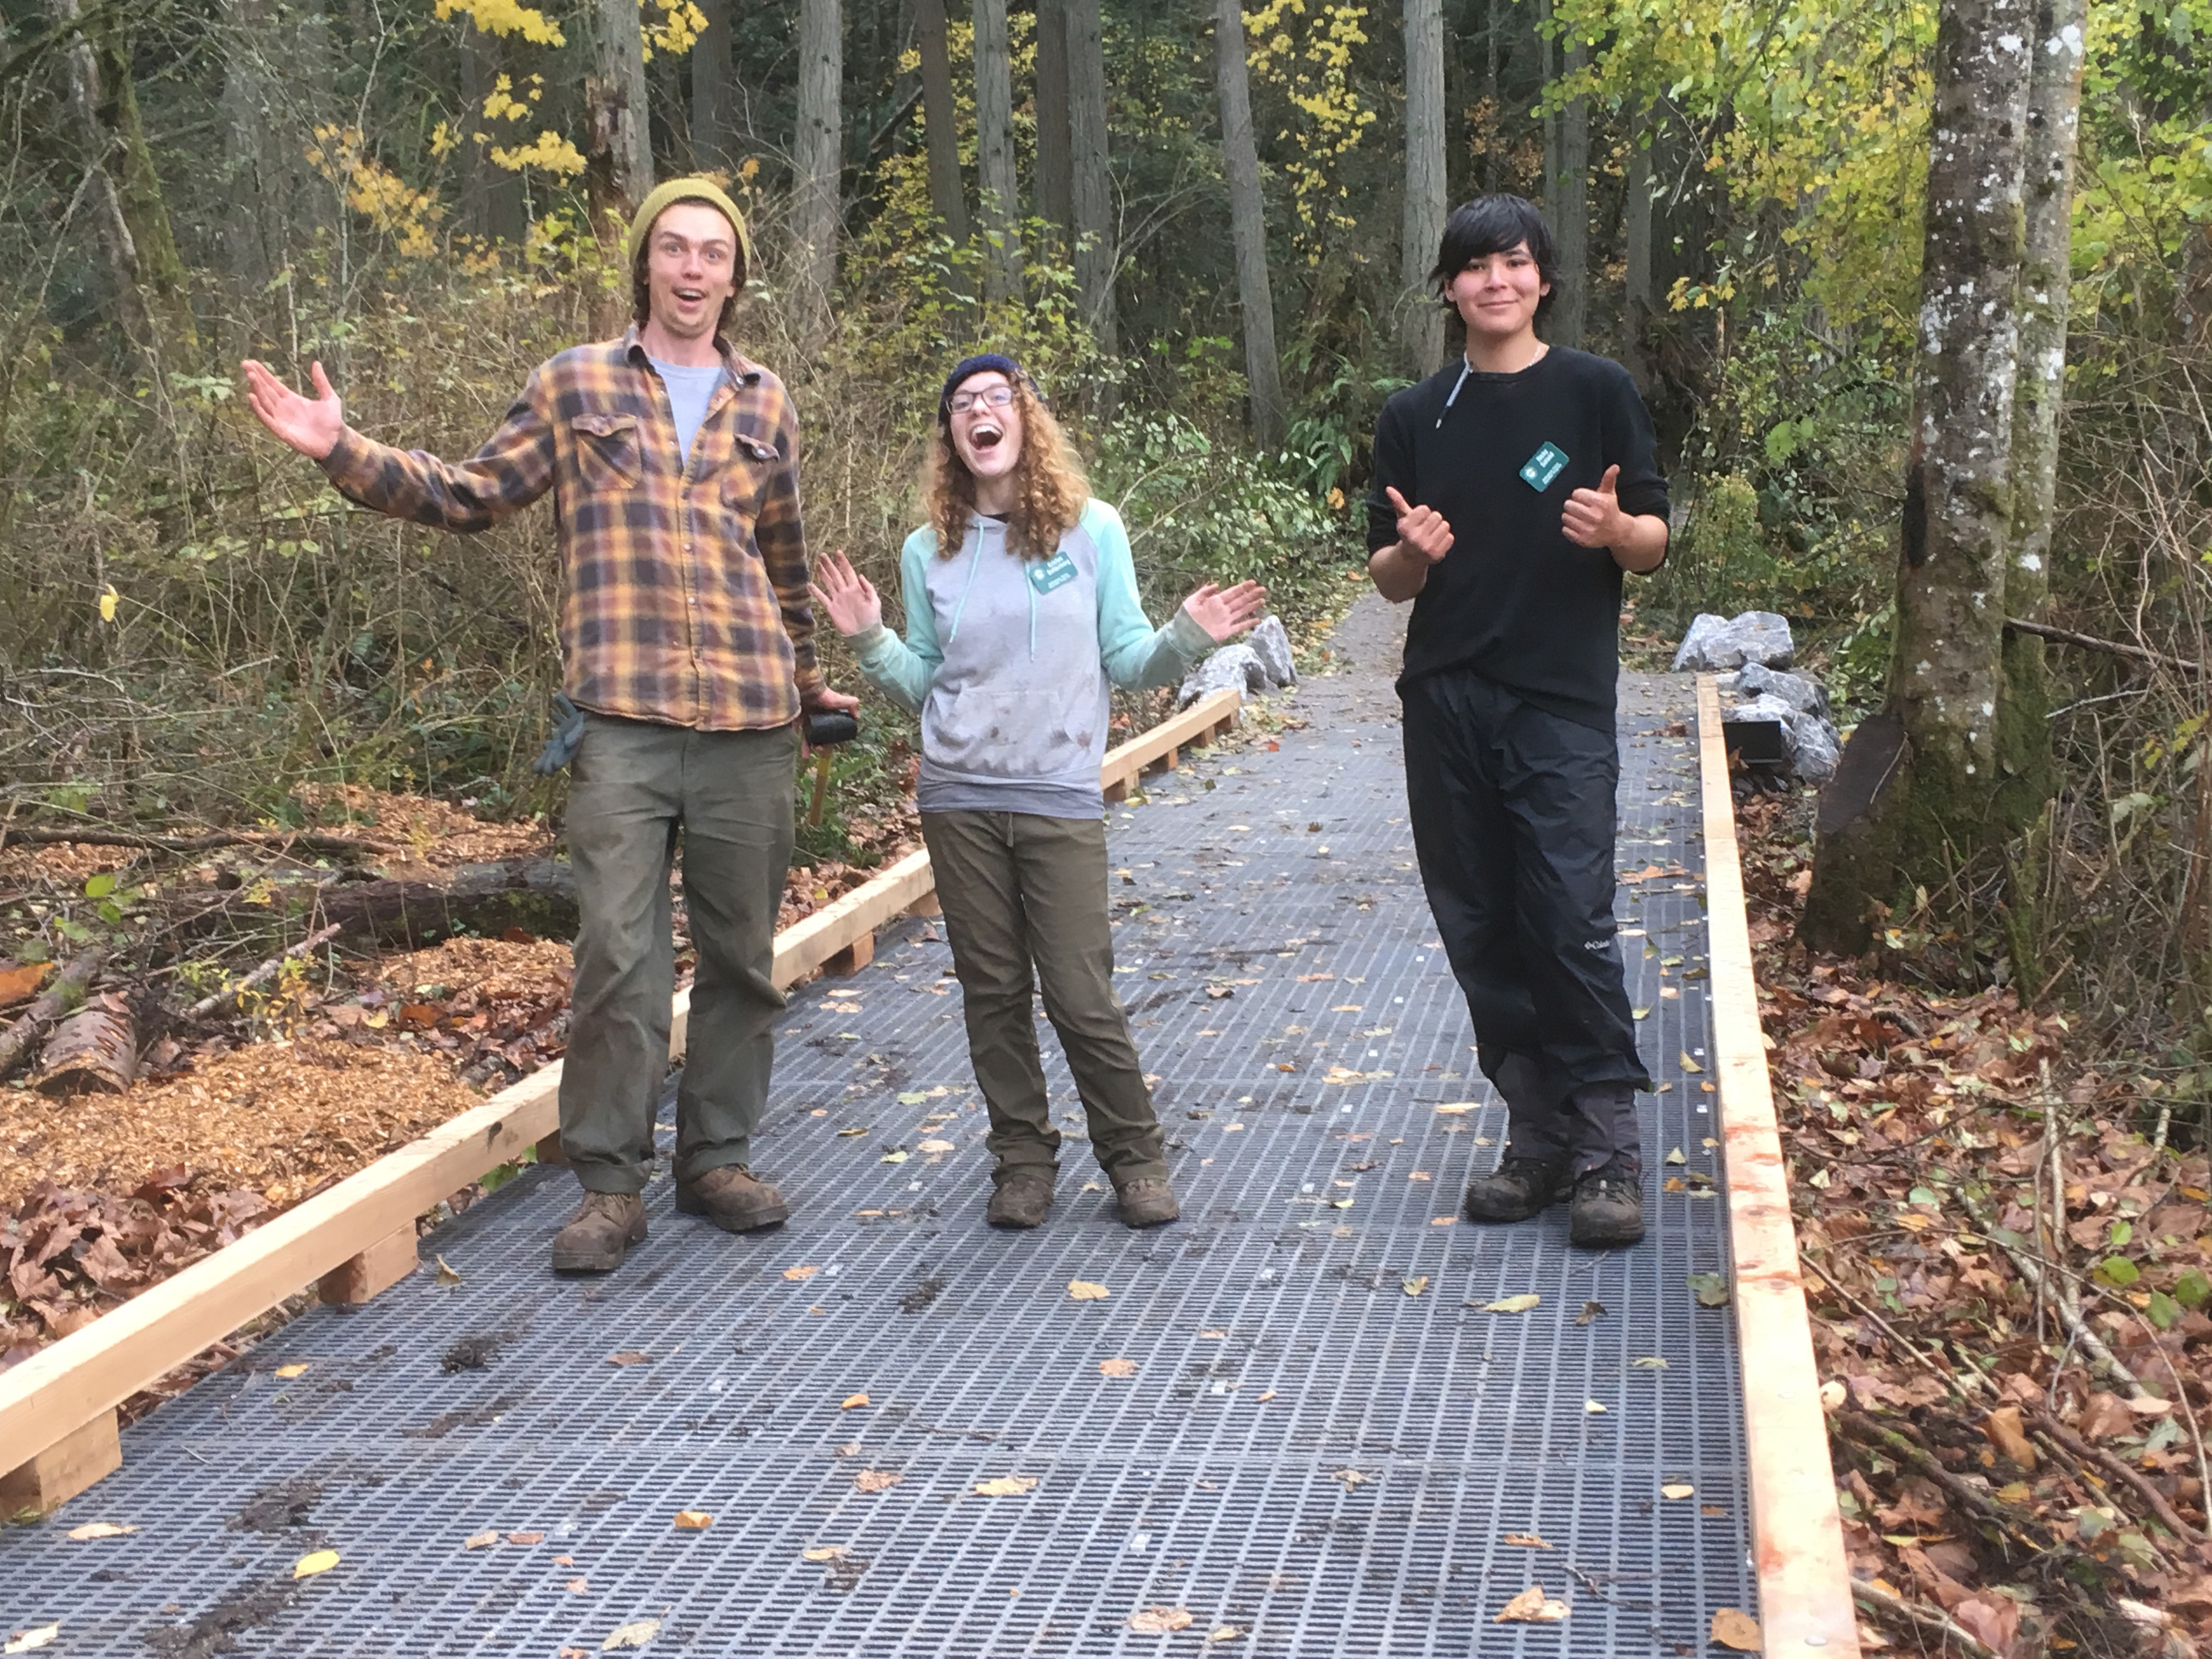 Jackson, Kristen & Ricky on new trail by Rae Edwards with City of Bellingham Parks and Rec.JPG